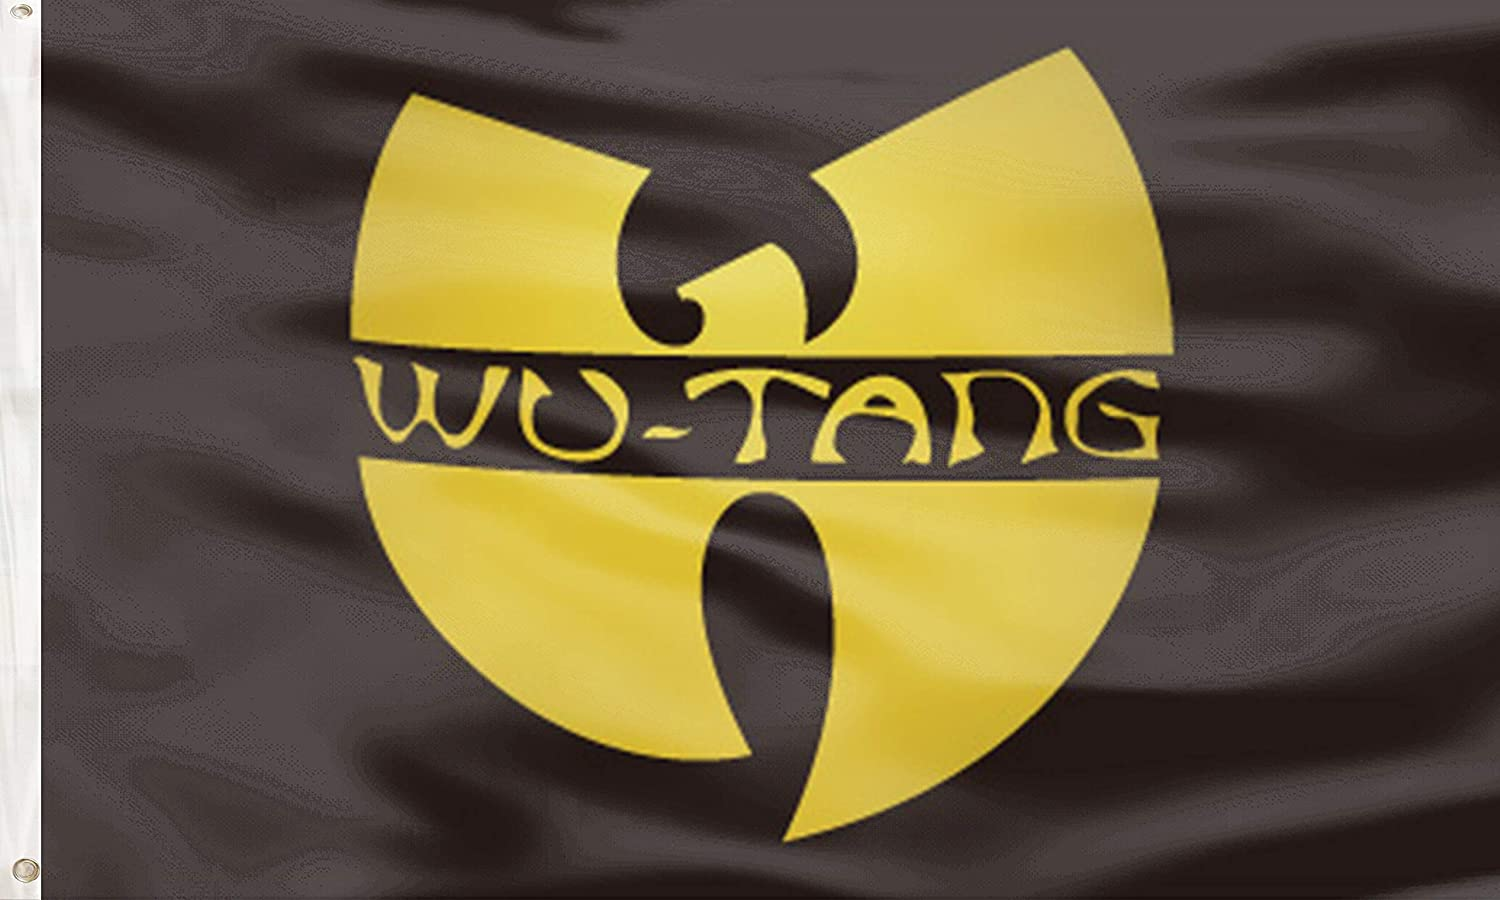 WU-Tang Clan Flag Funny Poster UV Resistance Fading & Durable Man Cave Wall Flag with Brass Grommets for Dorm Room Decor,Outdoor,Parties,3 x 5 Ft